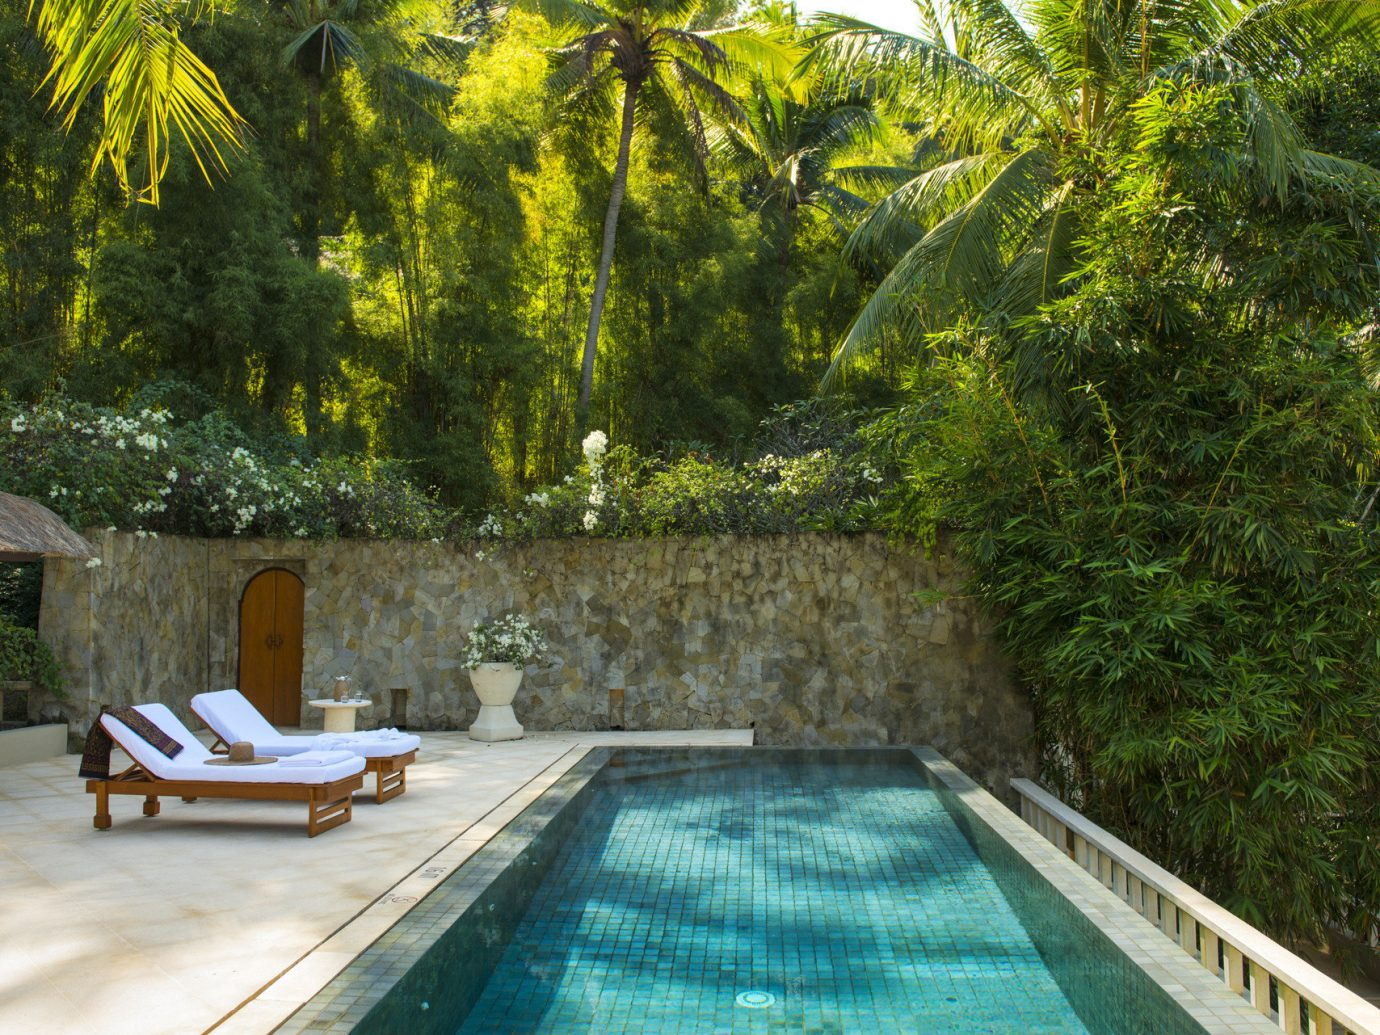 News Trip Ideas tree outdoor swimming pool property backyard estate park Villa cottage plant wood stone wooded